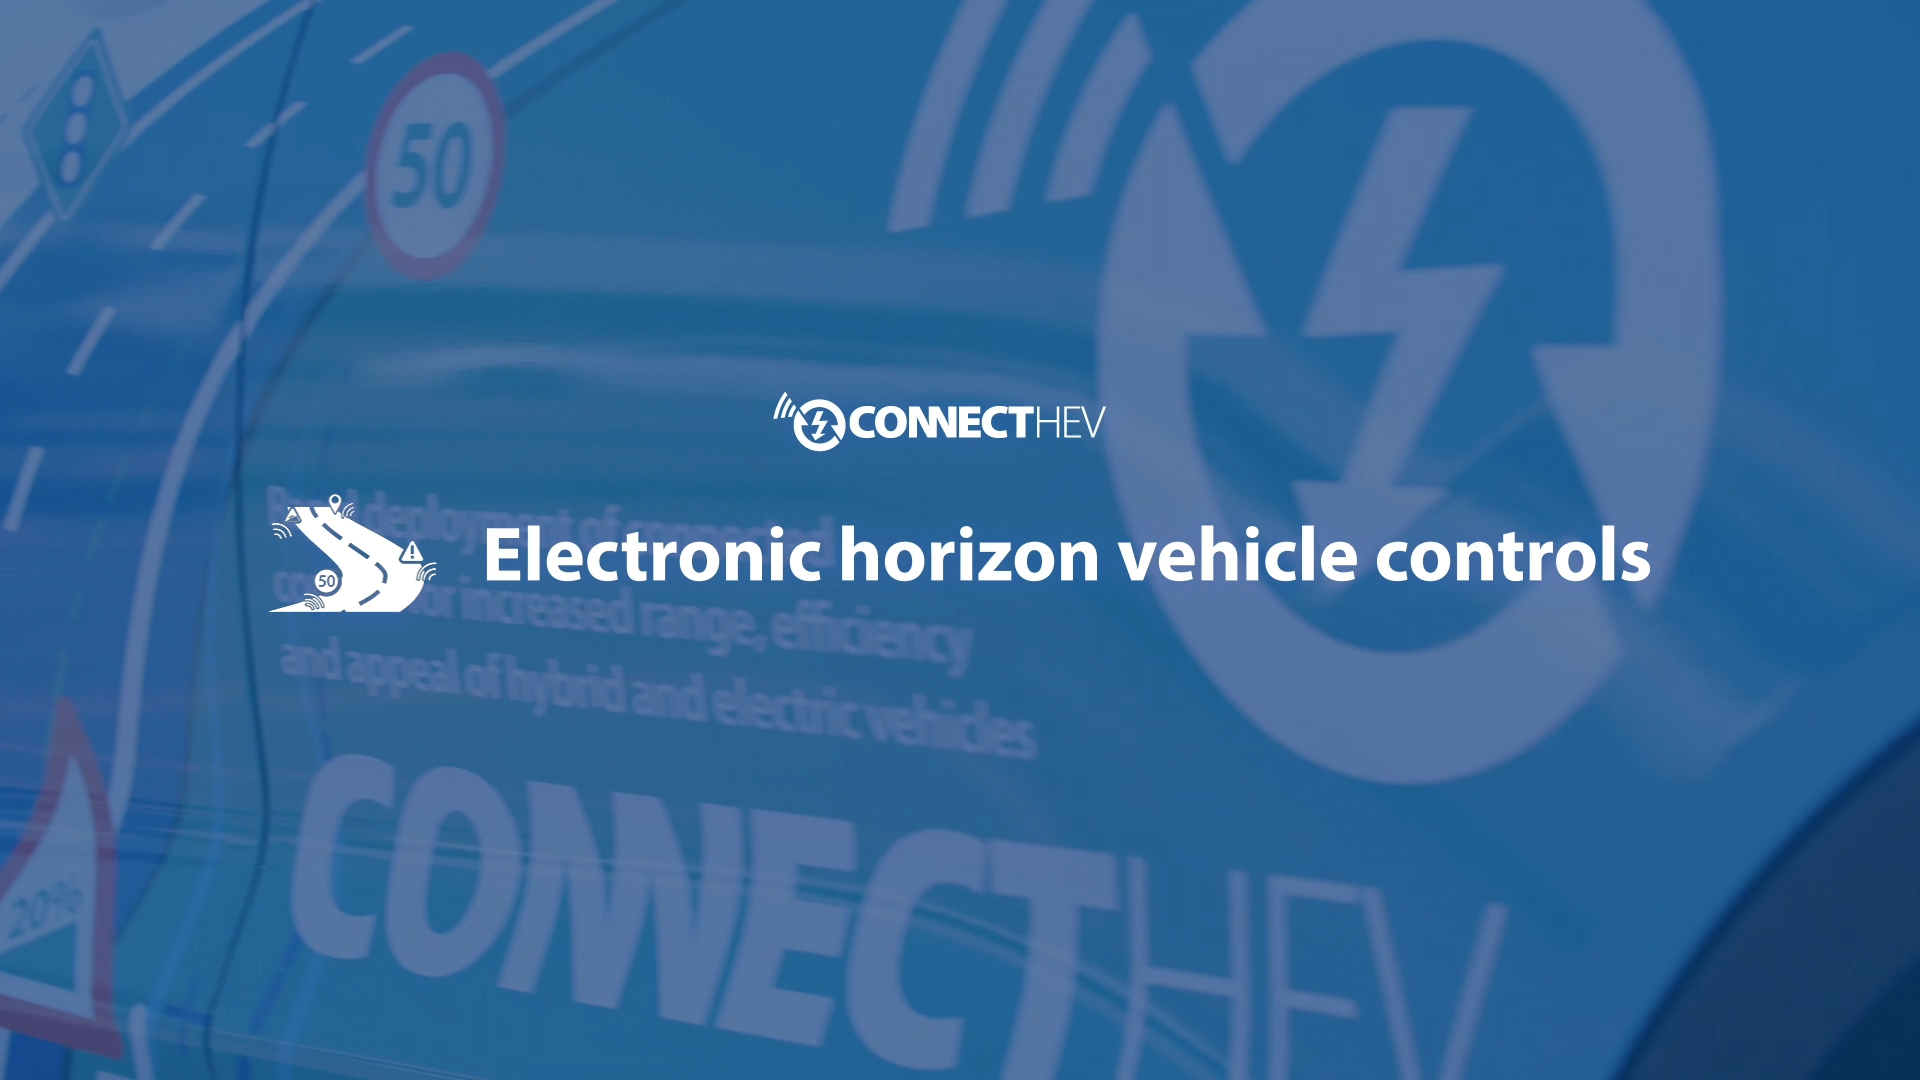 ConnectHEV | 5% vehicle efficiency increase using connected electronic horizon